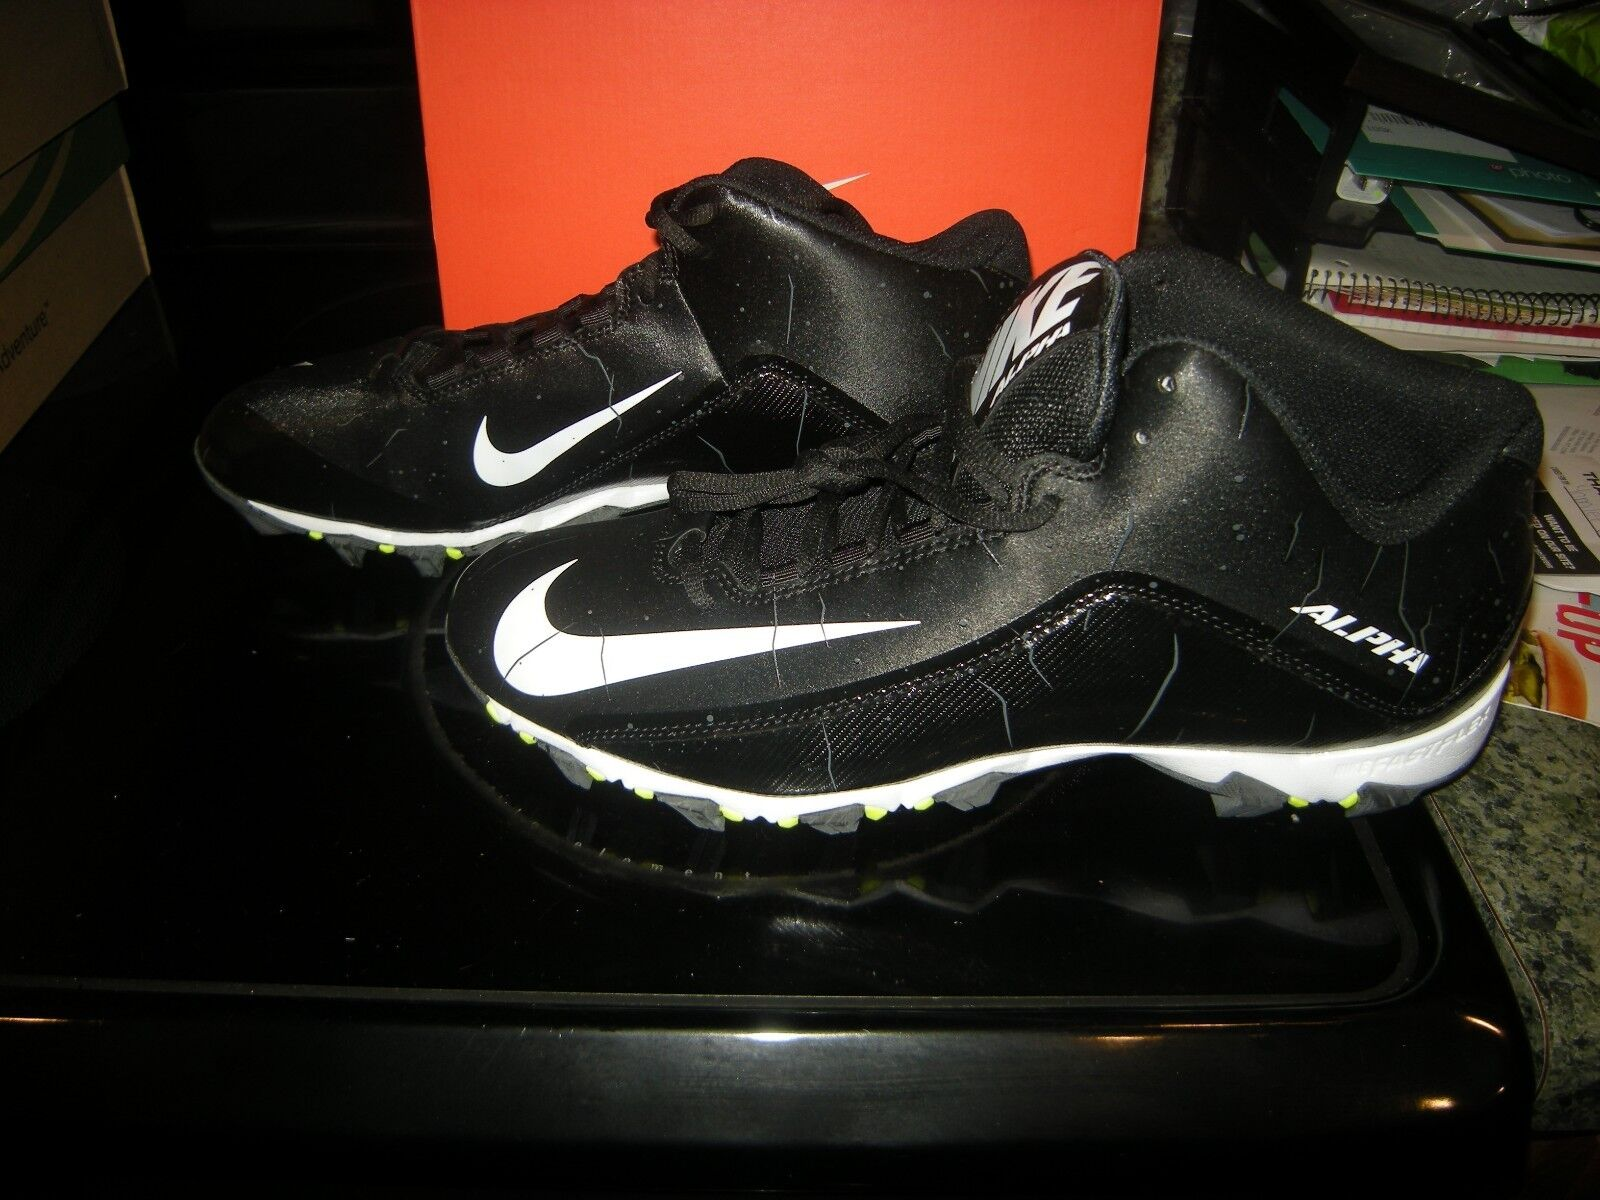 Brand New Mens Black & White Nike Alpha Shark 2 3/4 Football Cleats, Comfortable Comfortable and good-looking